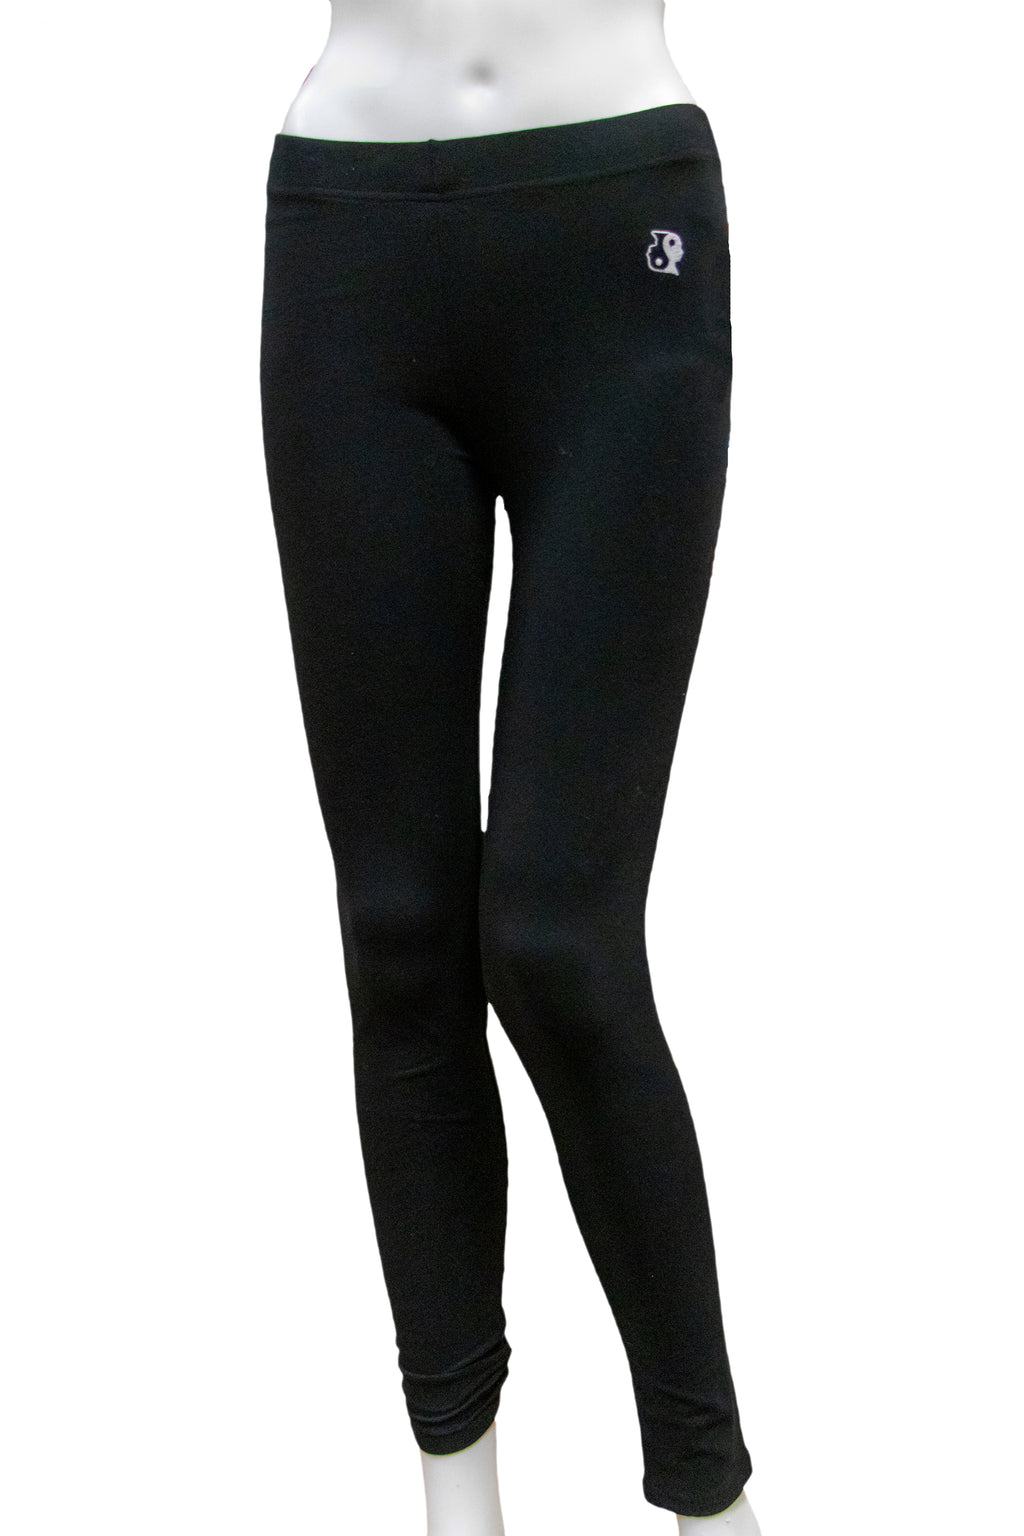 Yin Yang Yoga Leggings (Black)